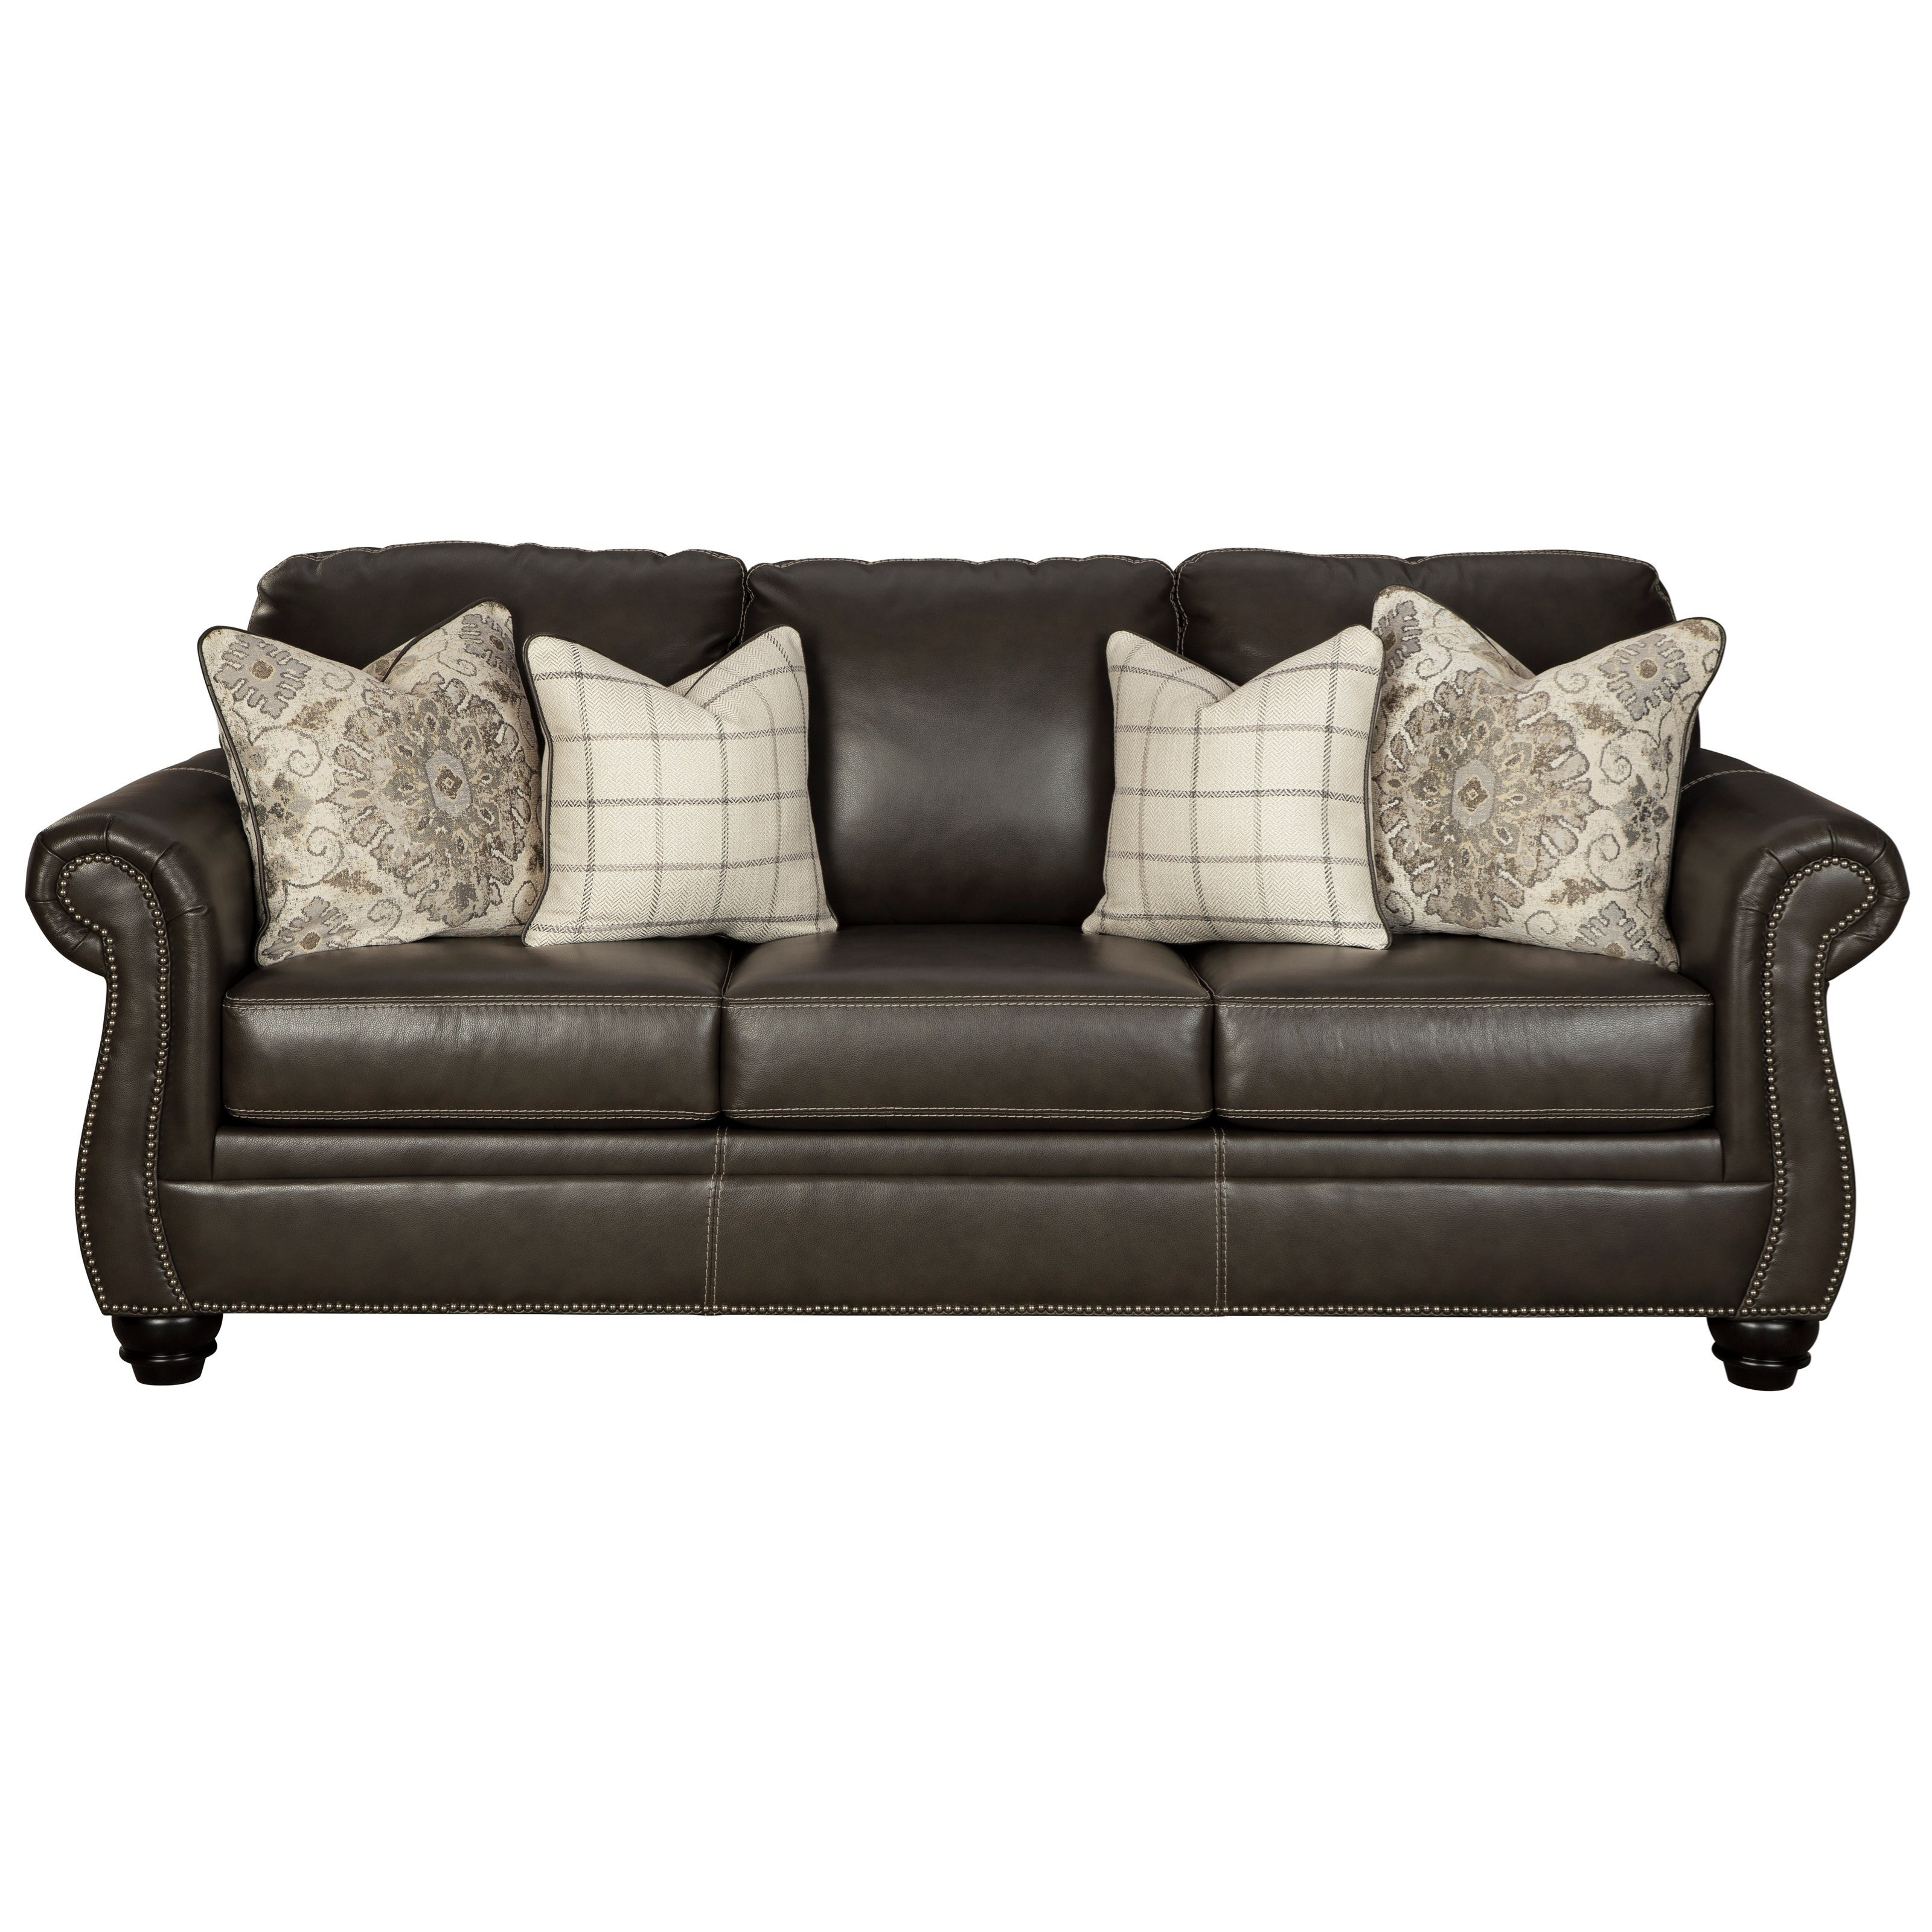 Signature Design By Ashley Lawthorn Traditional Queen Sofa Sleeper With Nailhead Trim Wayside Furniture Sleeper Sofas